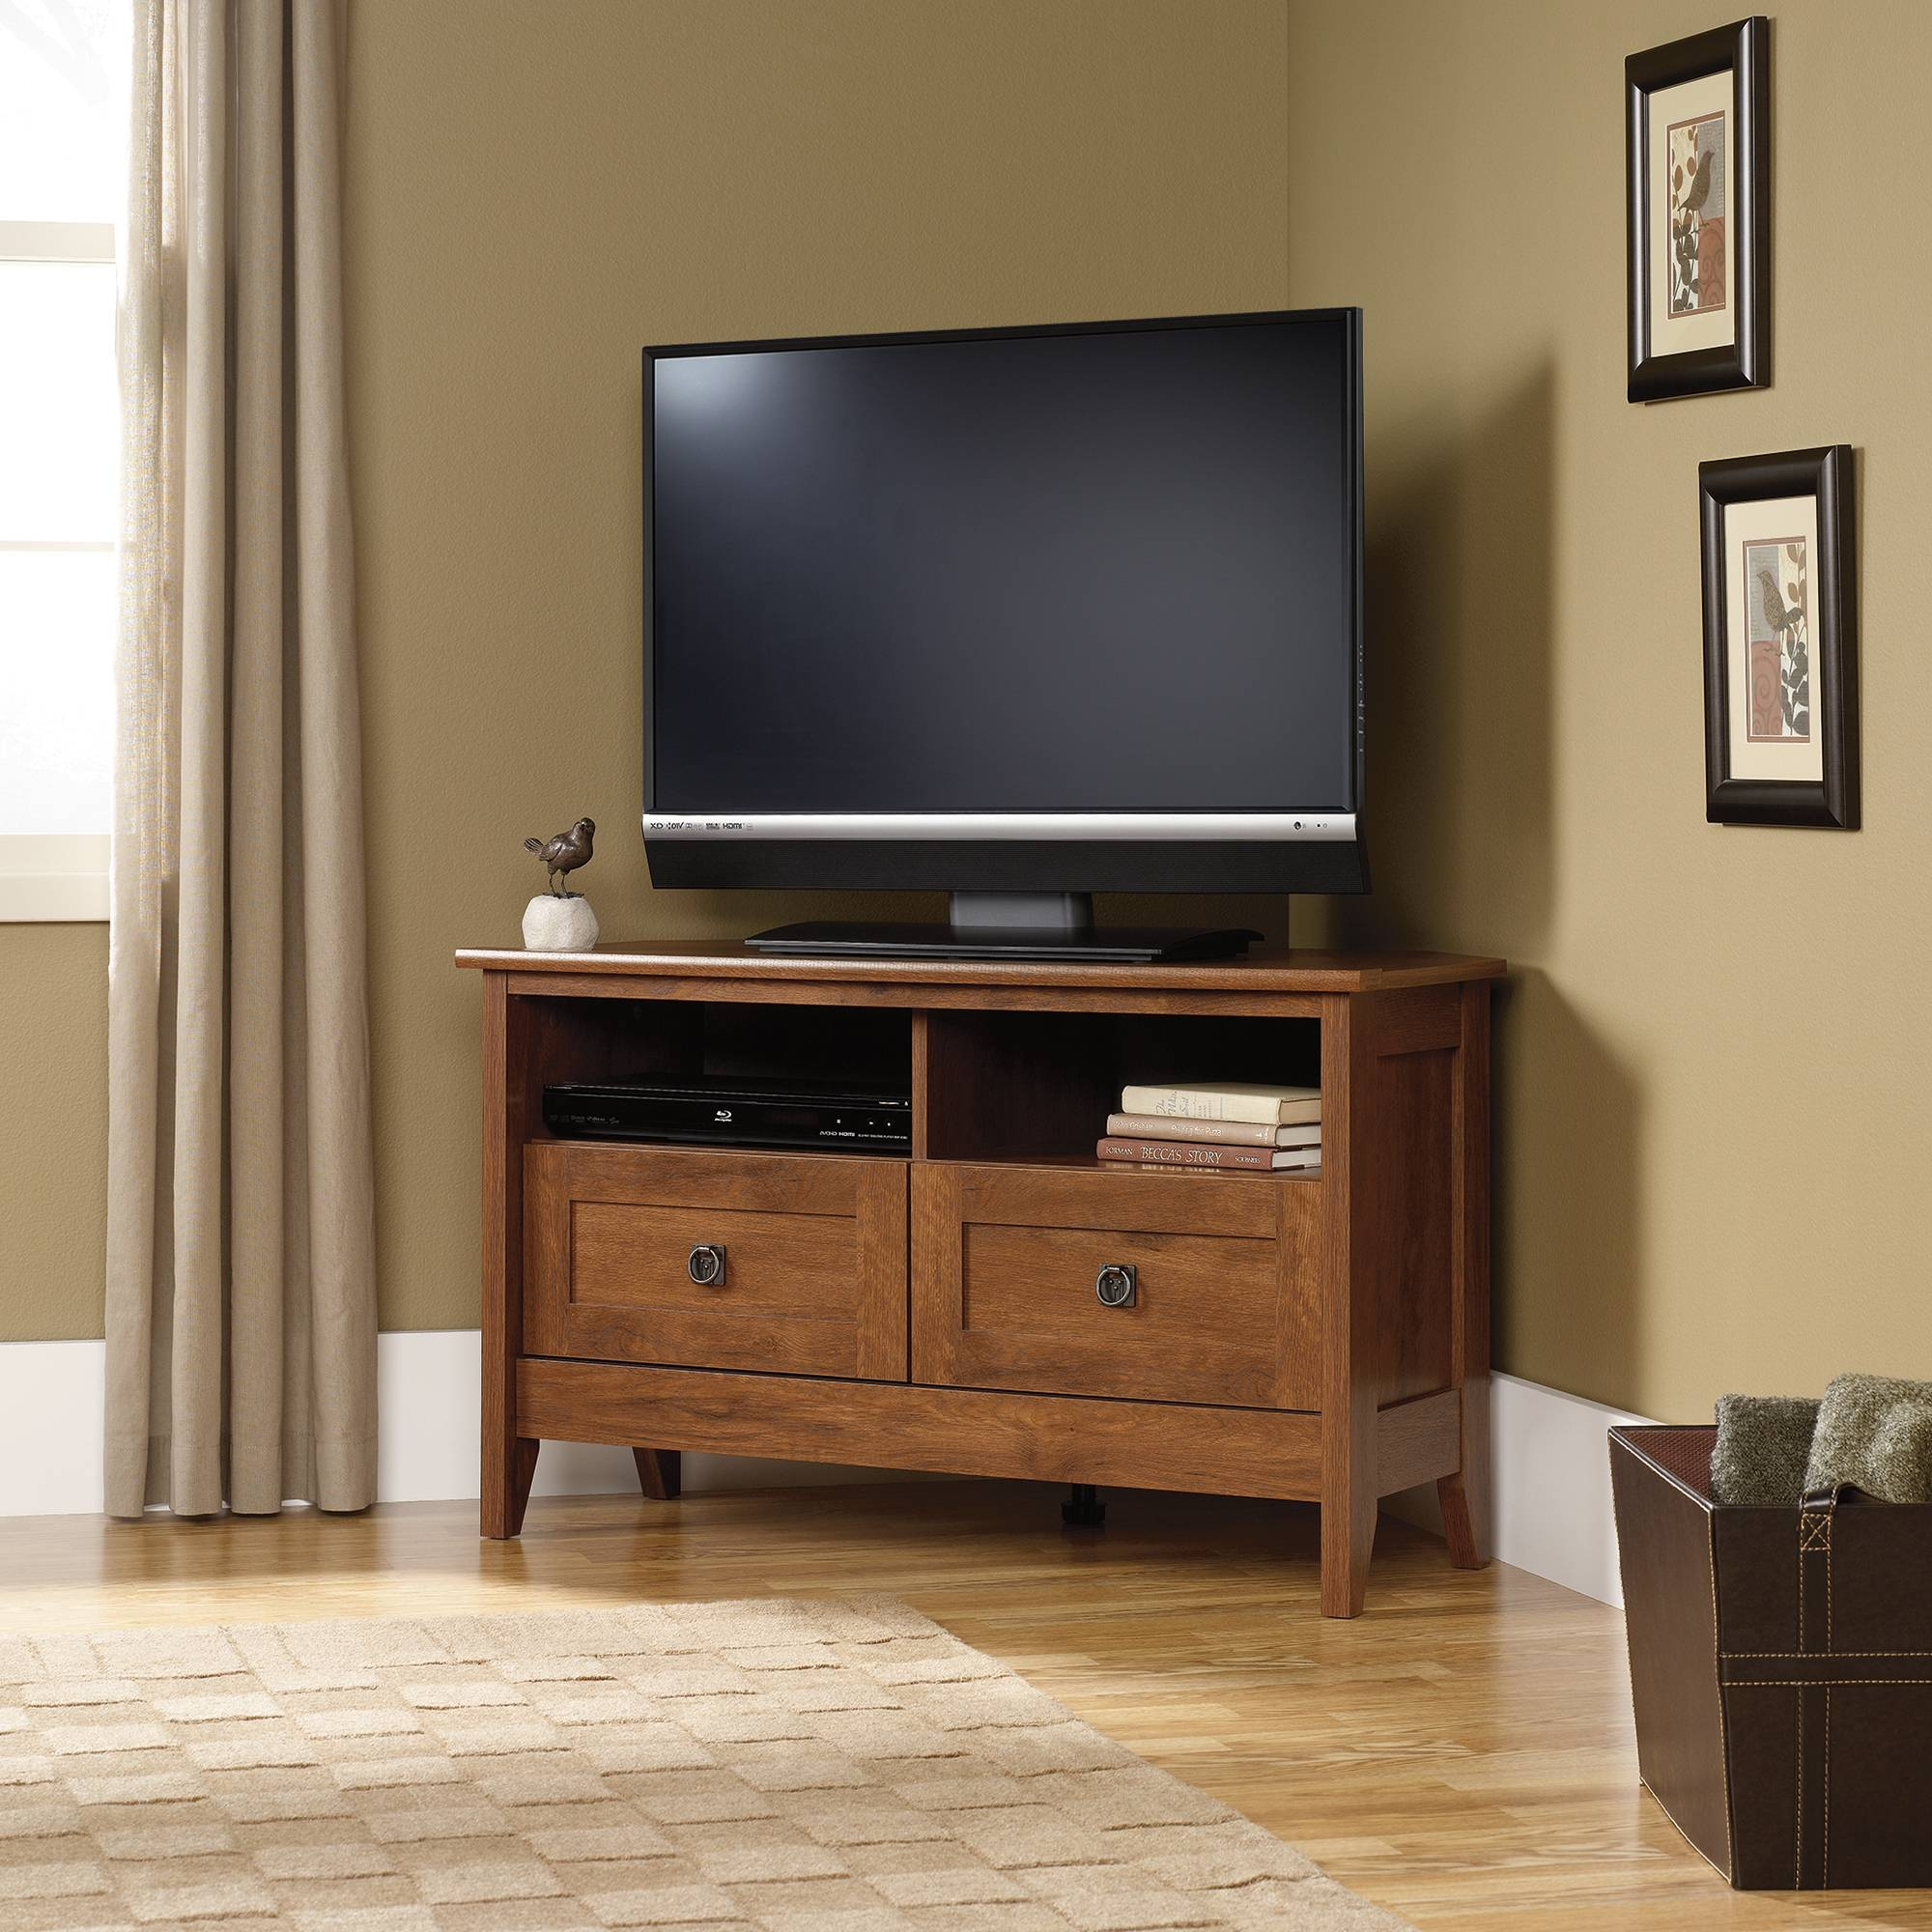 Sauder Select | Corner Tv Stand | 410627 | Sauder With Corner Tv Tables Stands (View 11 of 15)